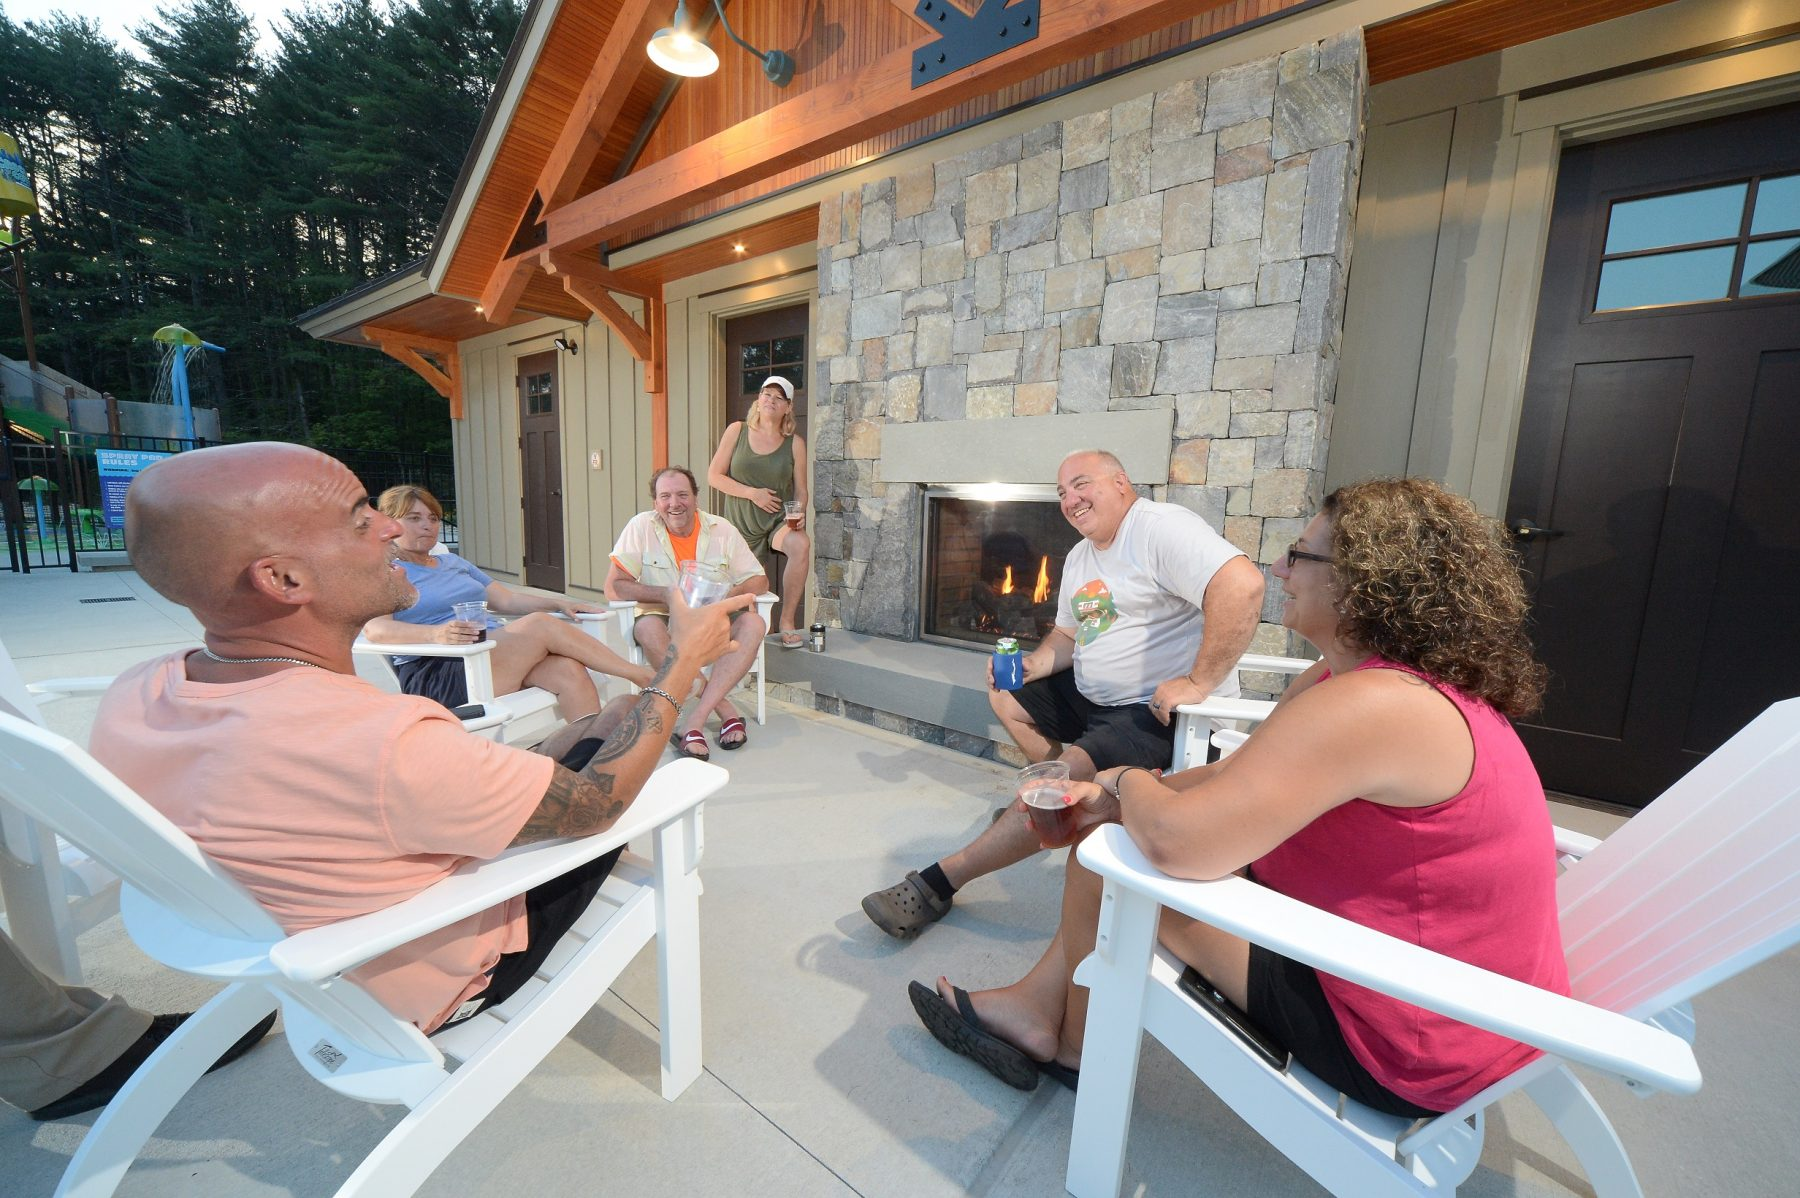 Guests are seated around and in front of a stone fireplace that is built into the wall. In the background of the photo a portion of the splash pad is shown.